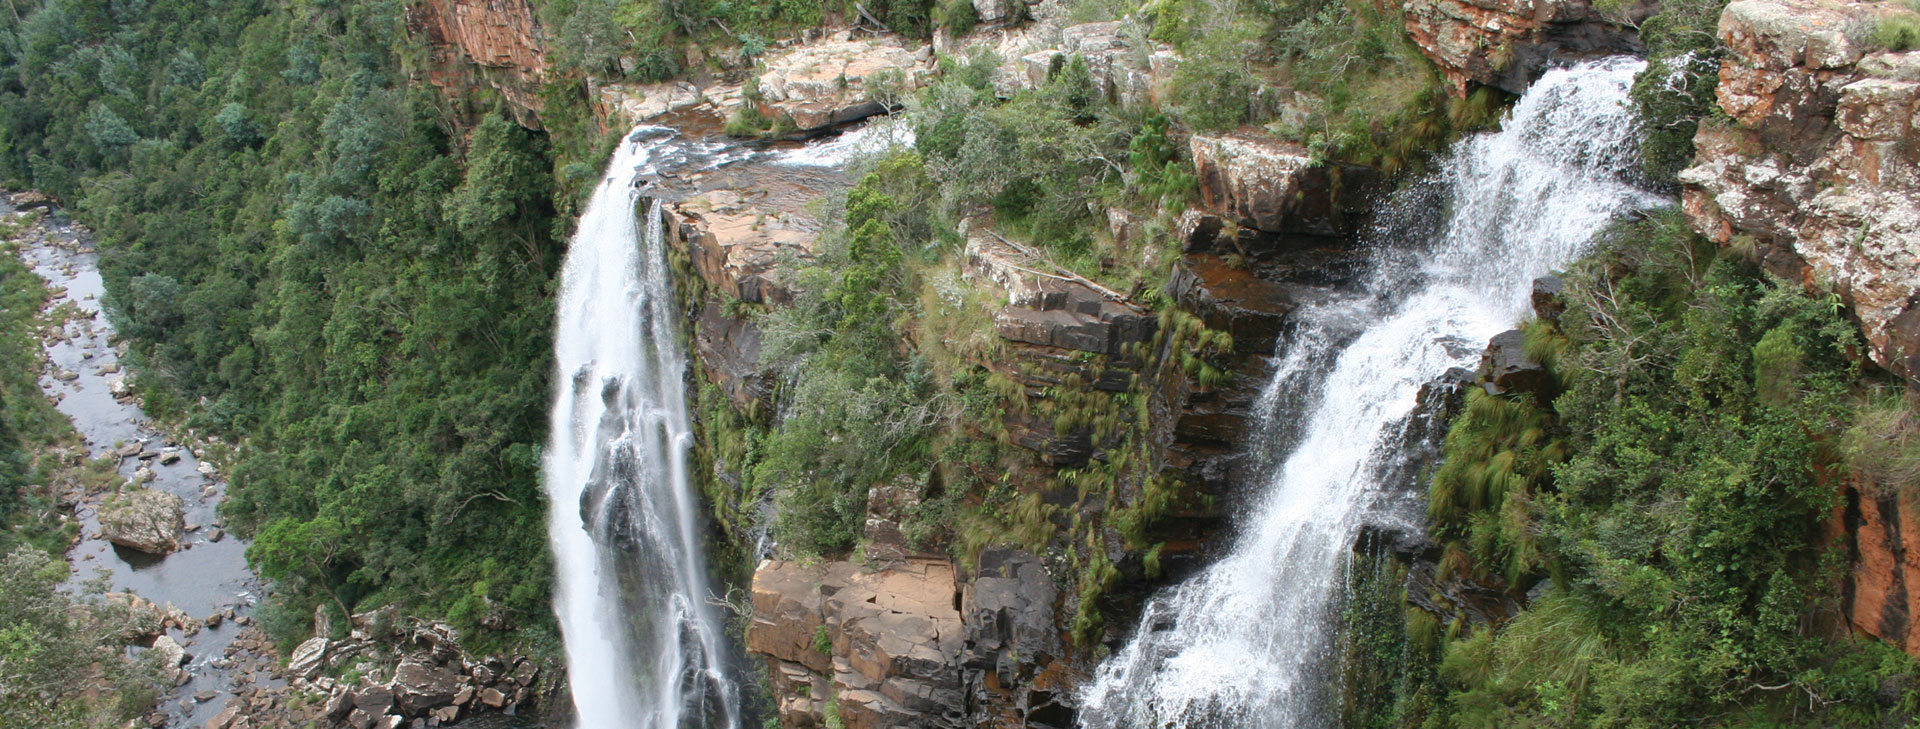 The Lisbon Falls lie within the popular Panorama Route, where you can visit some of the very best natural attractions in the region, including the Pinnacle, God's Window, Bourke's Luck Potholes, and some of the other waterfalls in the area including the Mac Mac Falls and Berlin Falls.